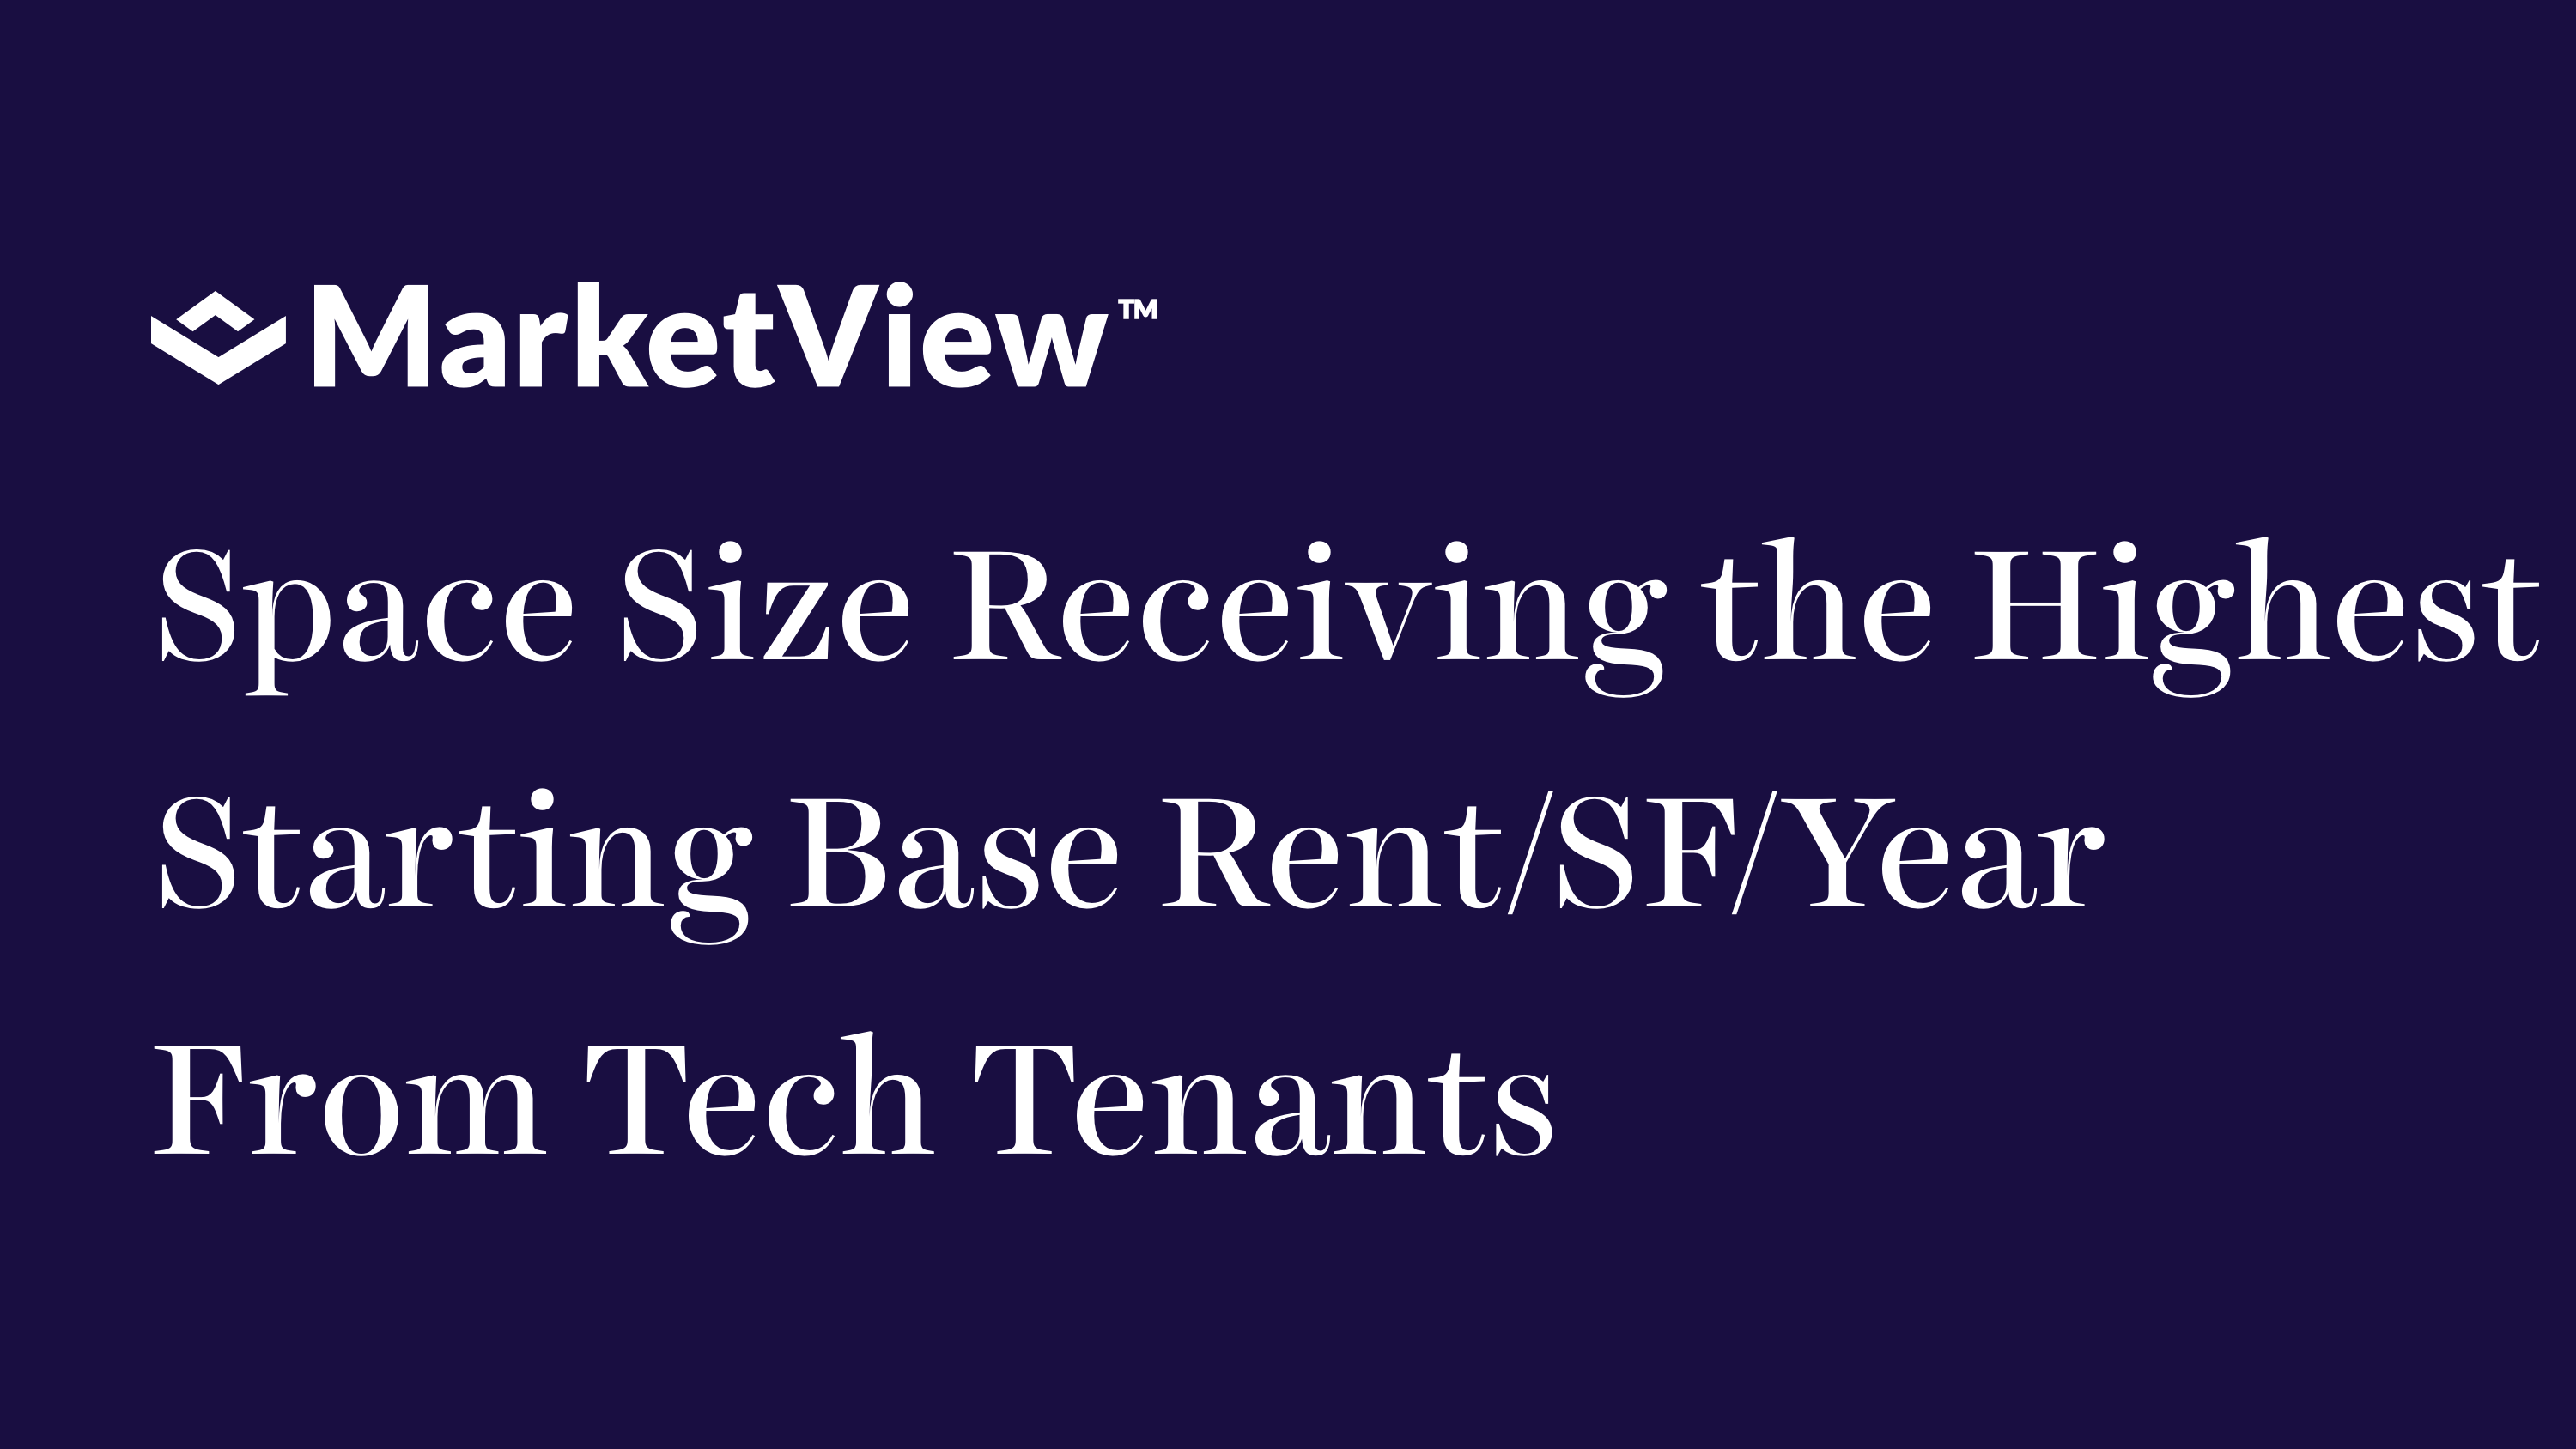 VTS MarketView Benchmark-Space Sizes Receiving Highest Base Rent/Year by Technology Tenants in US and UK